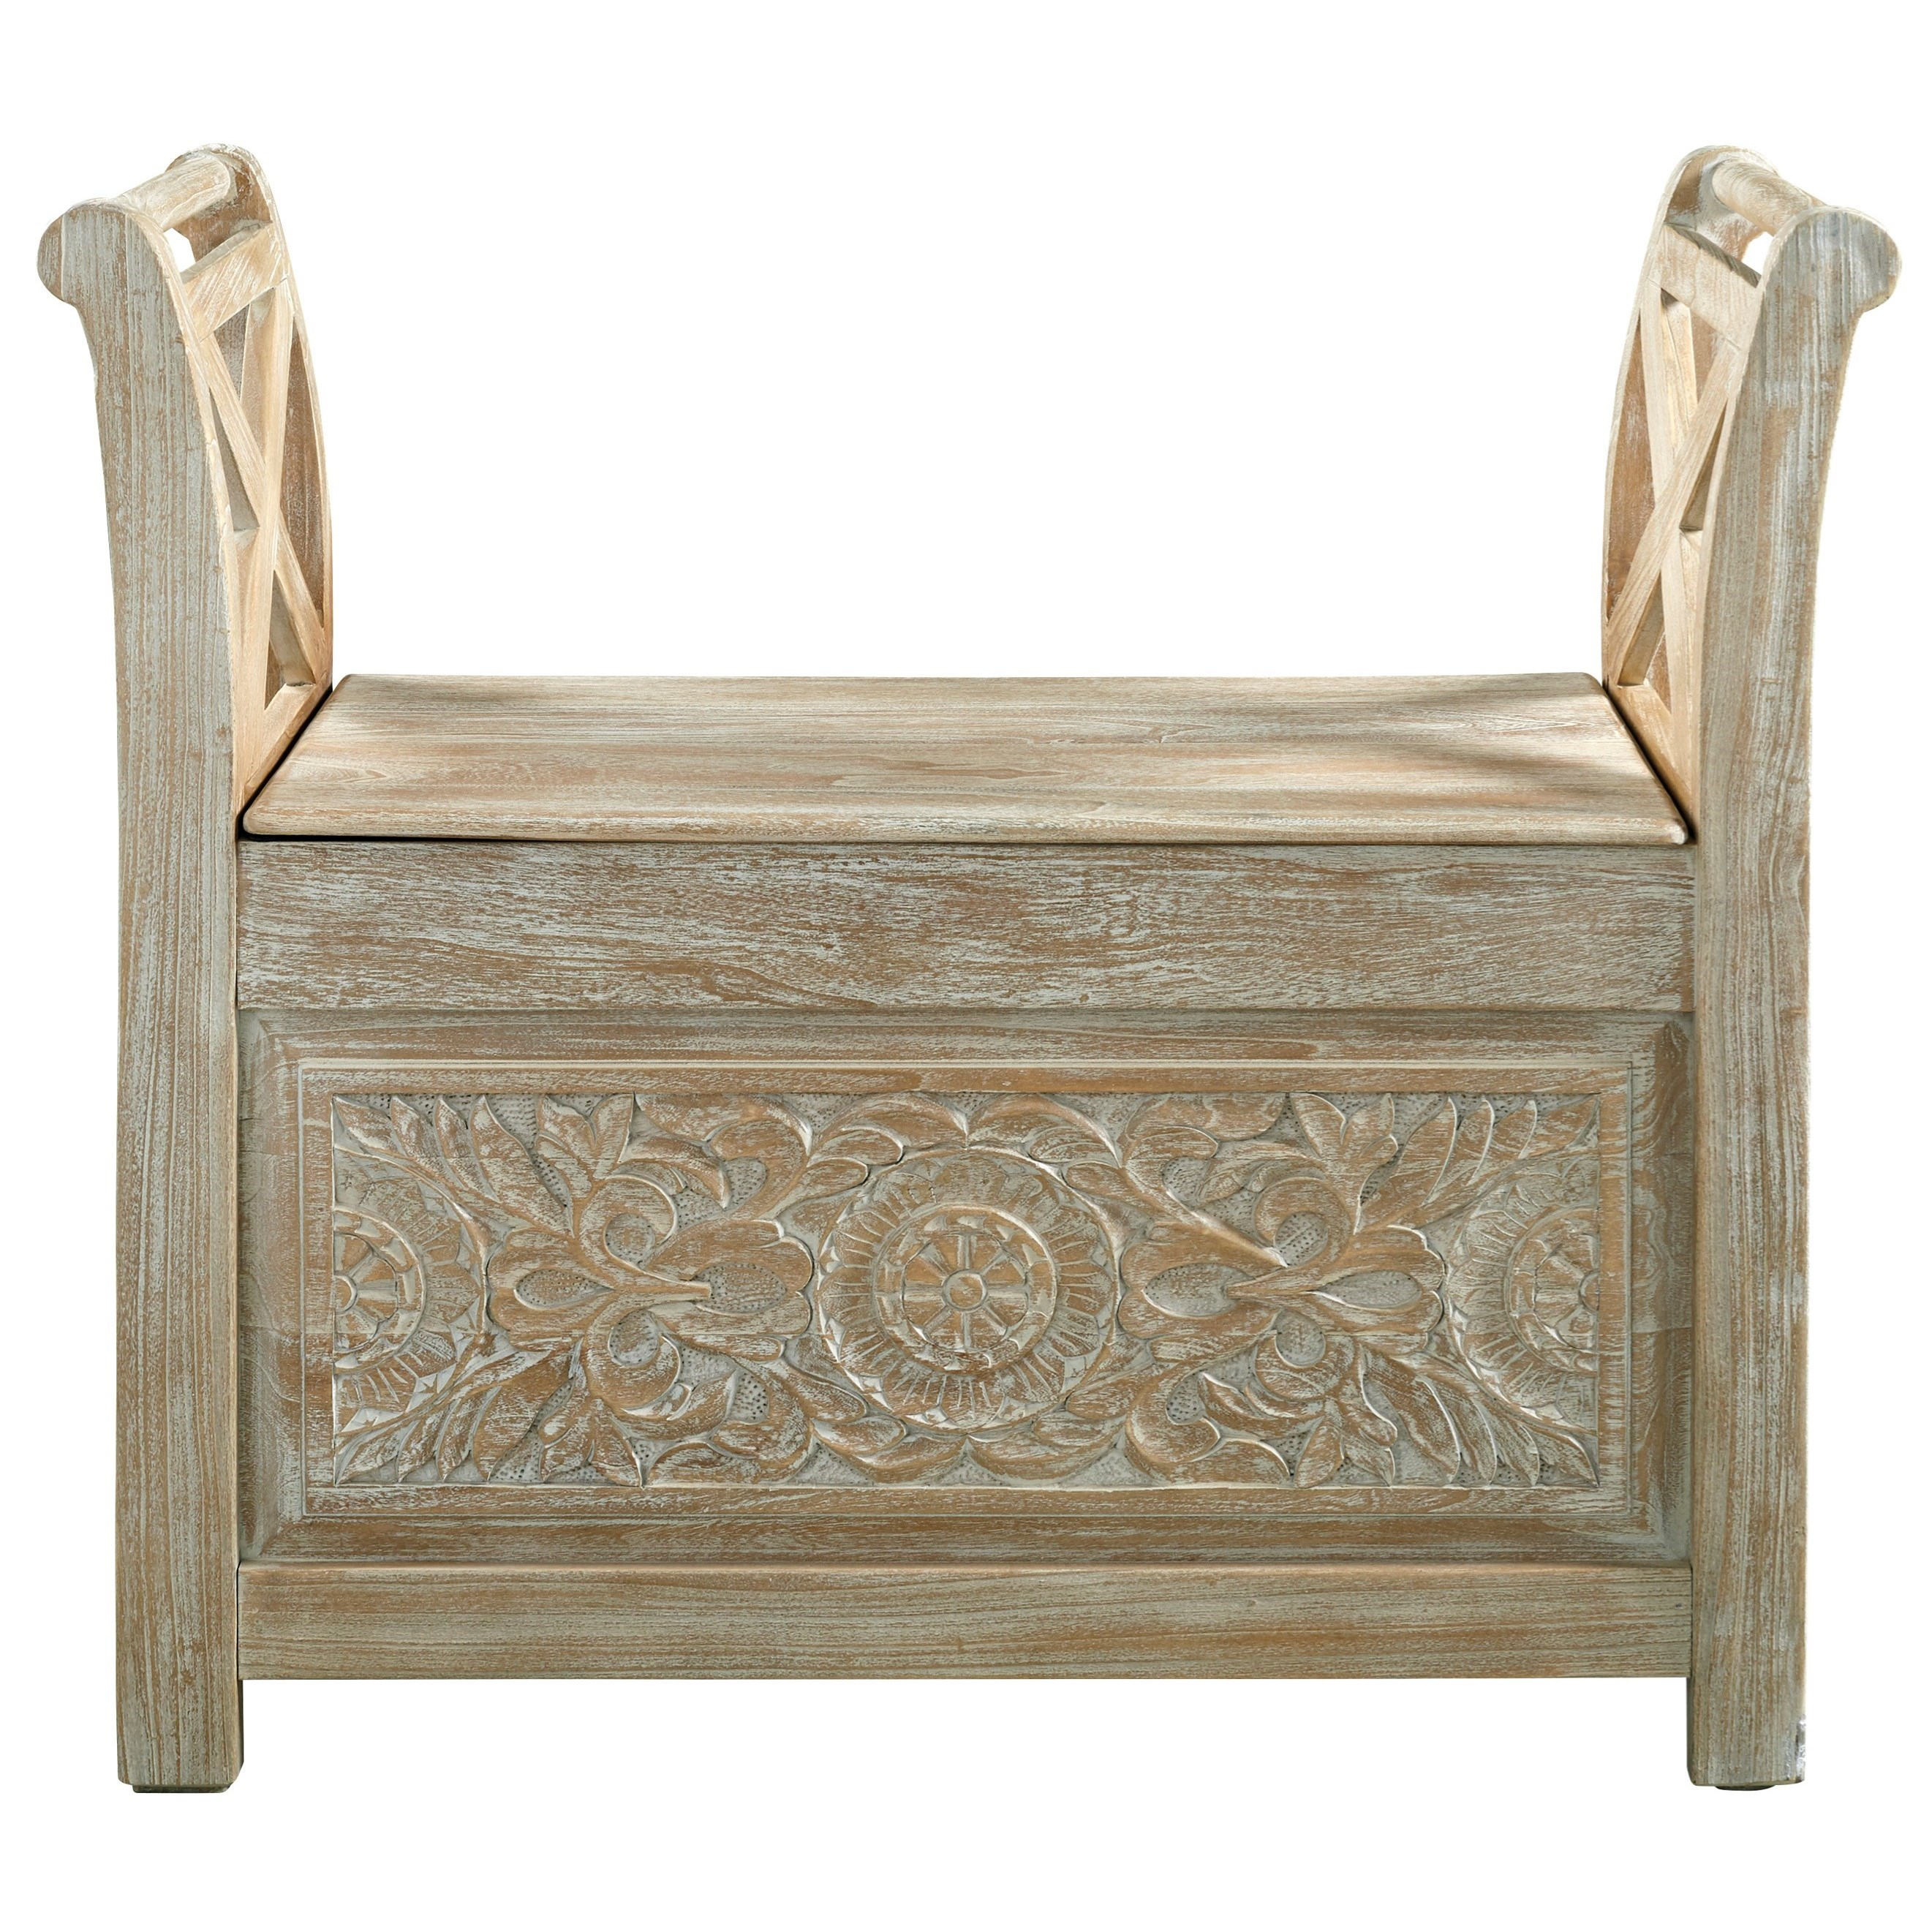 Storage Accent Bench with Carved Floral Details